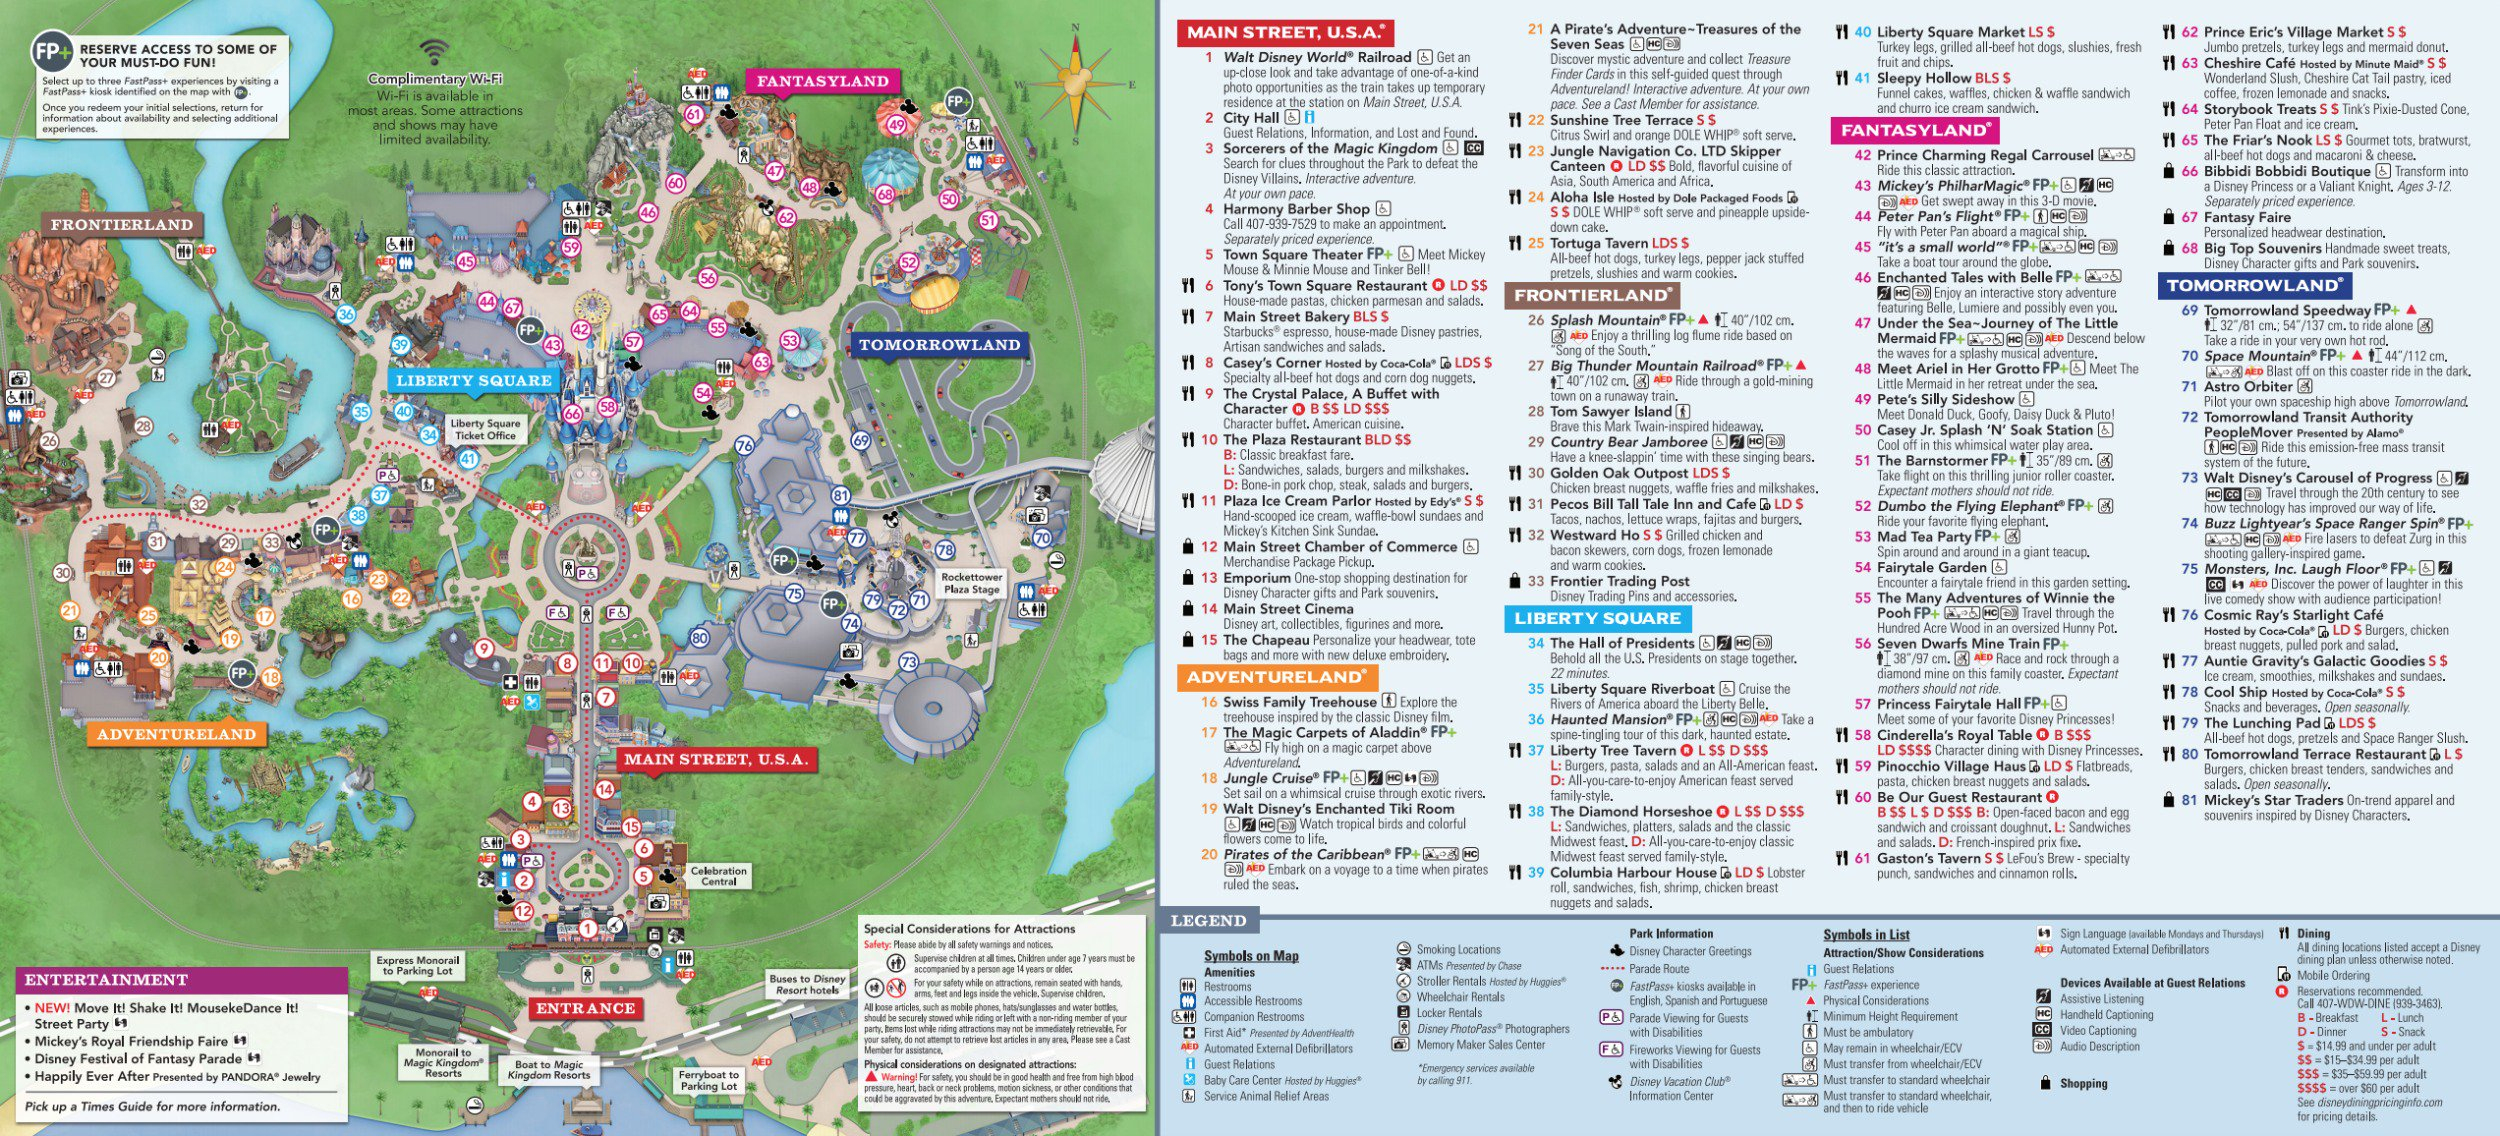 Magic Kingdom Park Map - Walt Disney World - Disney Florida Maps 2018